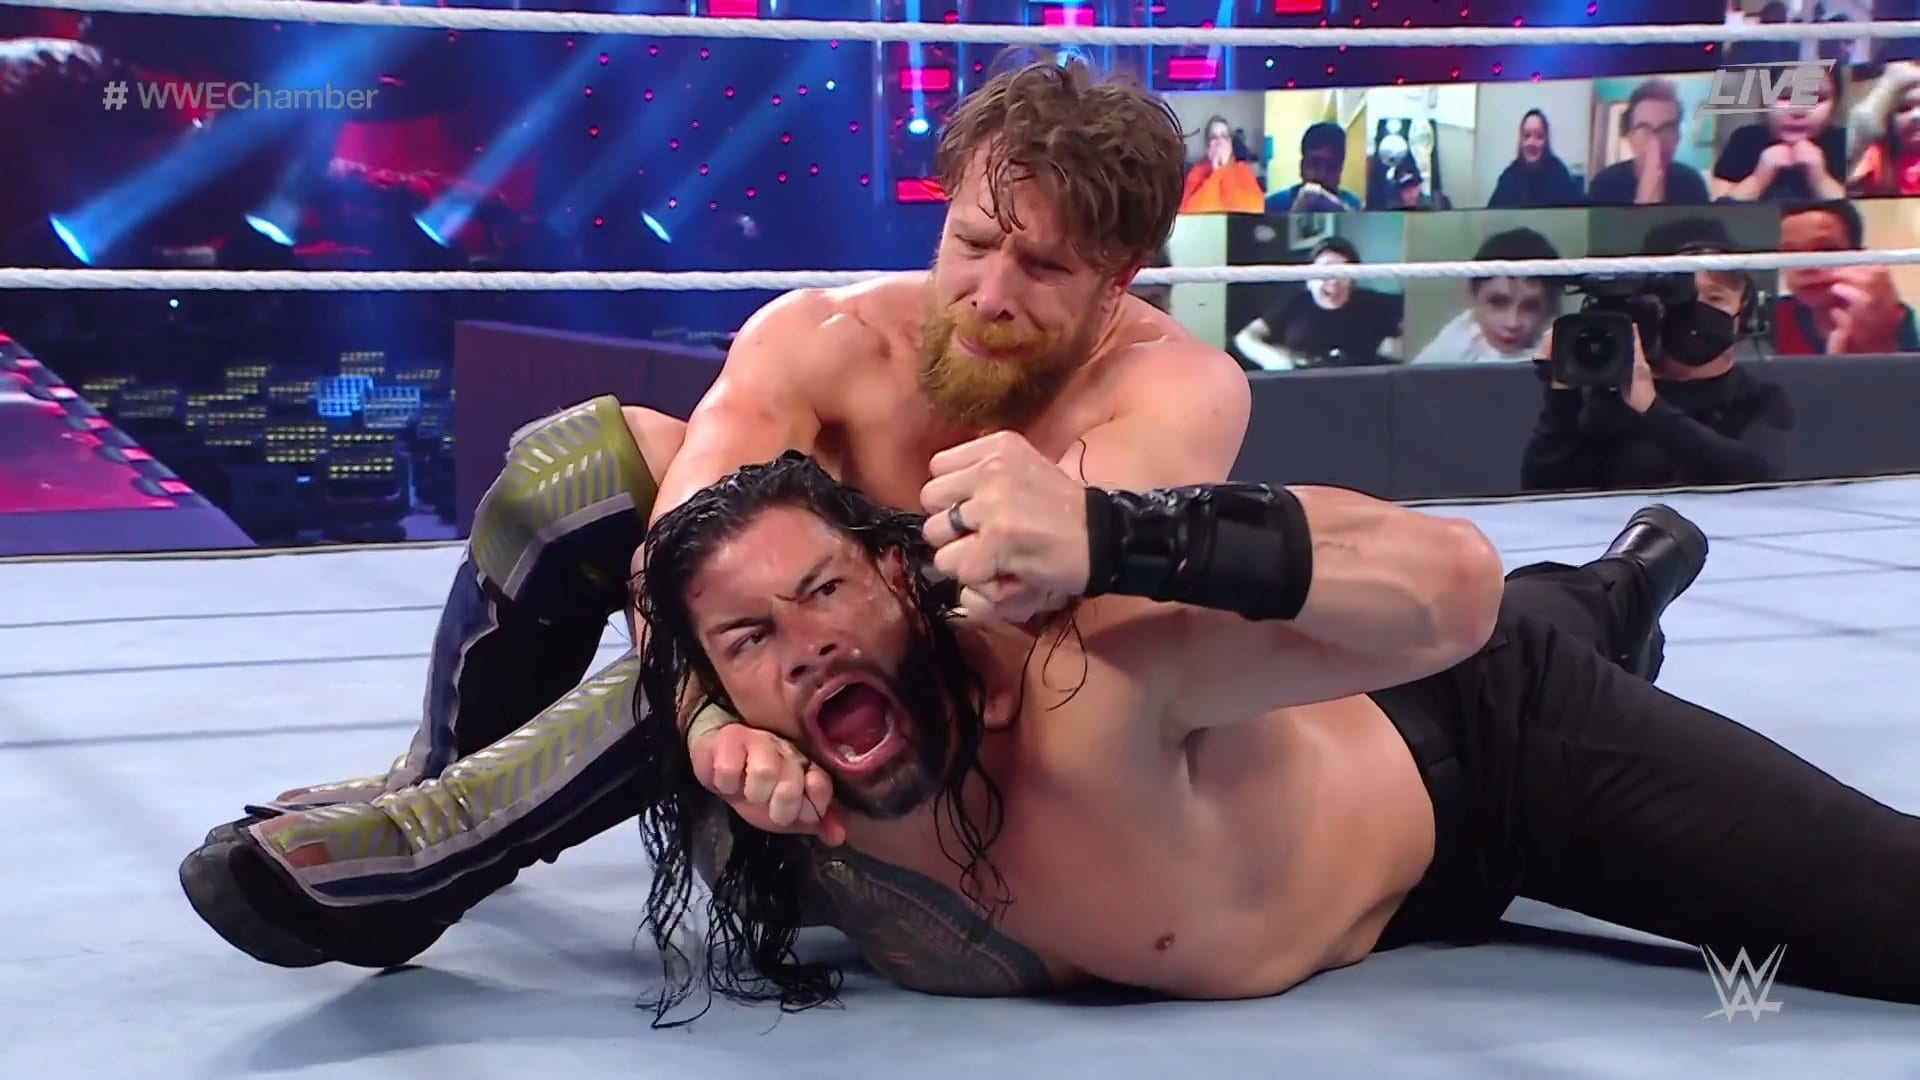 Huge Universal Title Match Set For Next Week, Daniel Bryan Done With WWE?